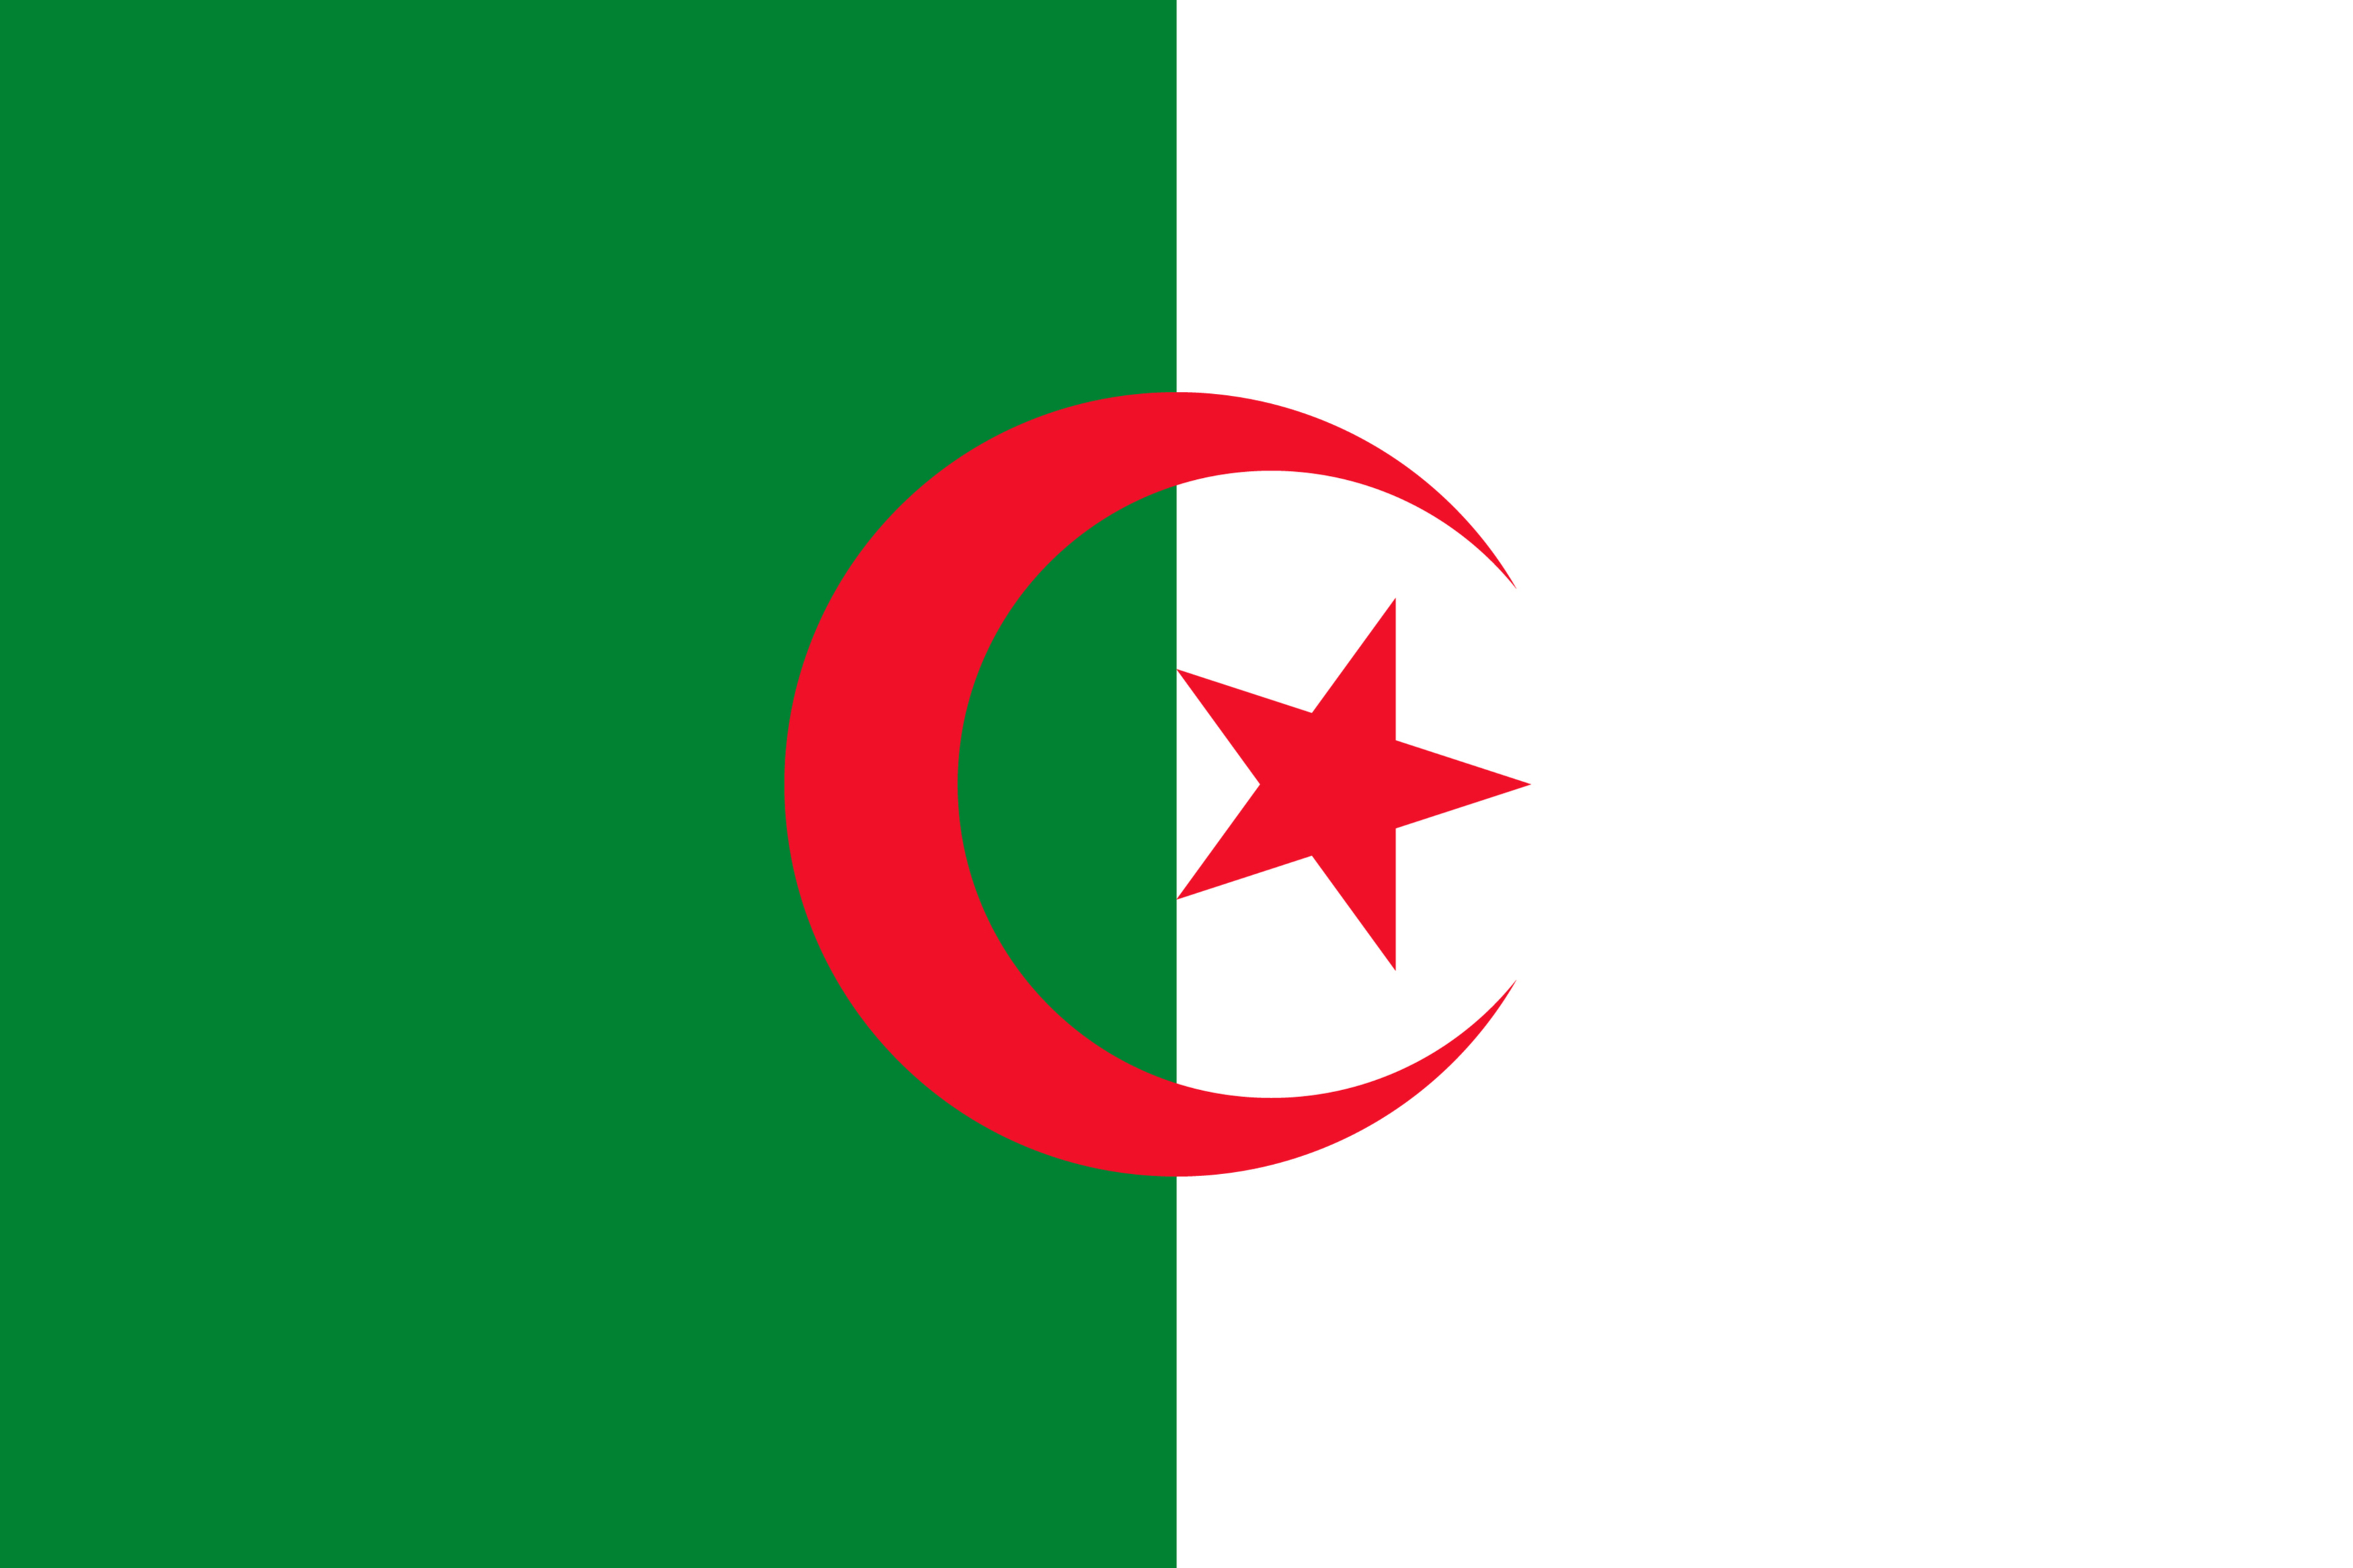 The National Flag of Algeria features two equal vertical bands of green (hoist side) and white, with a red star and a crescent at the two-color boundary